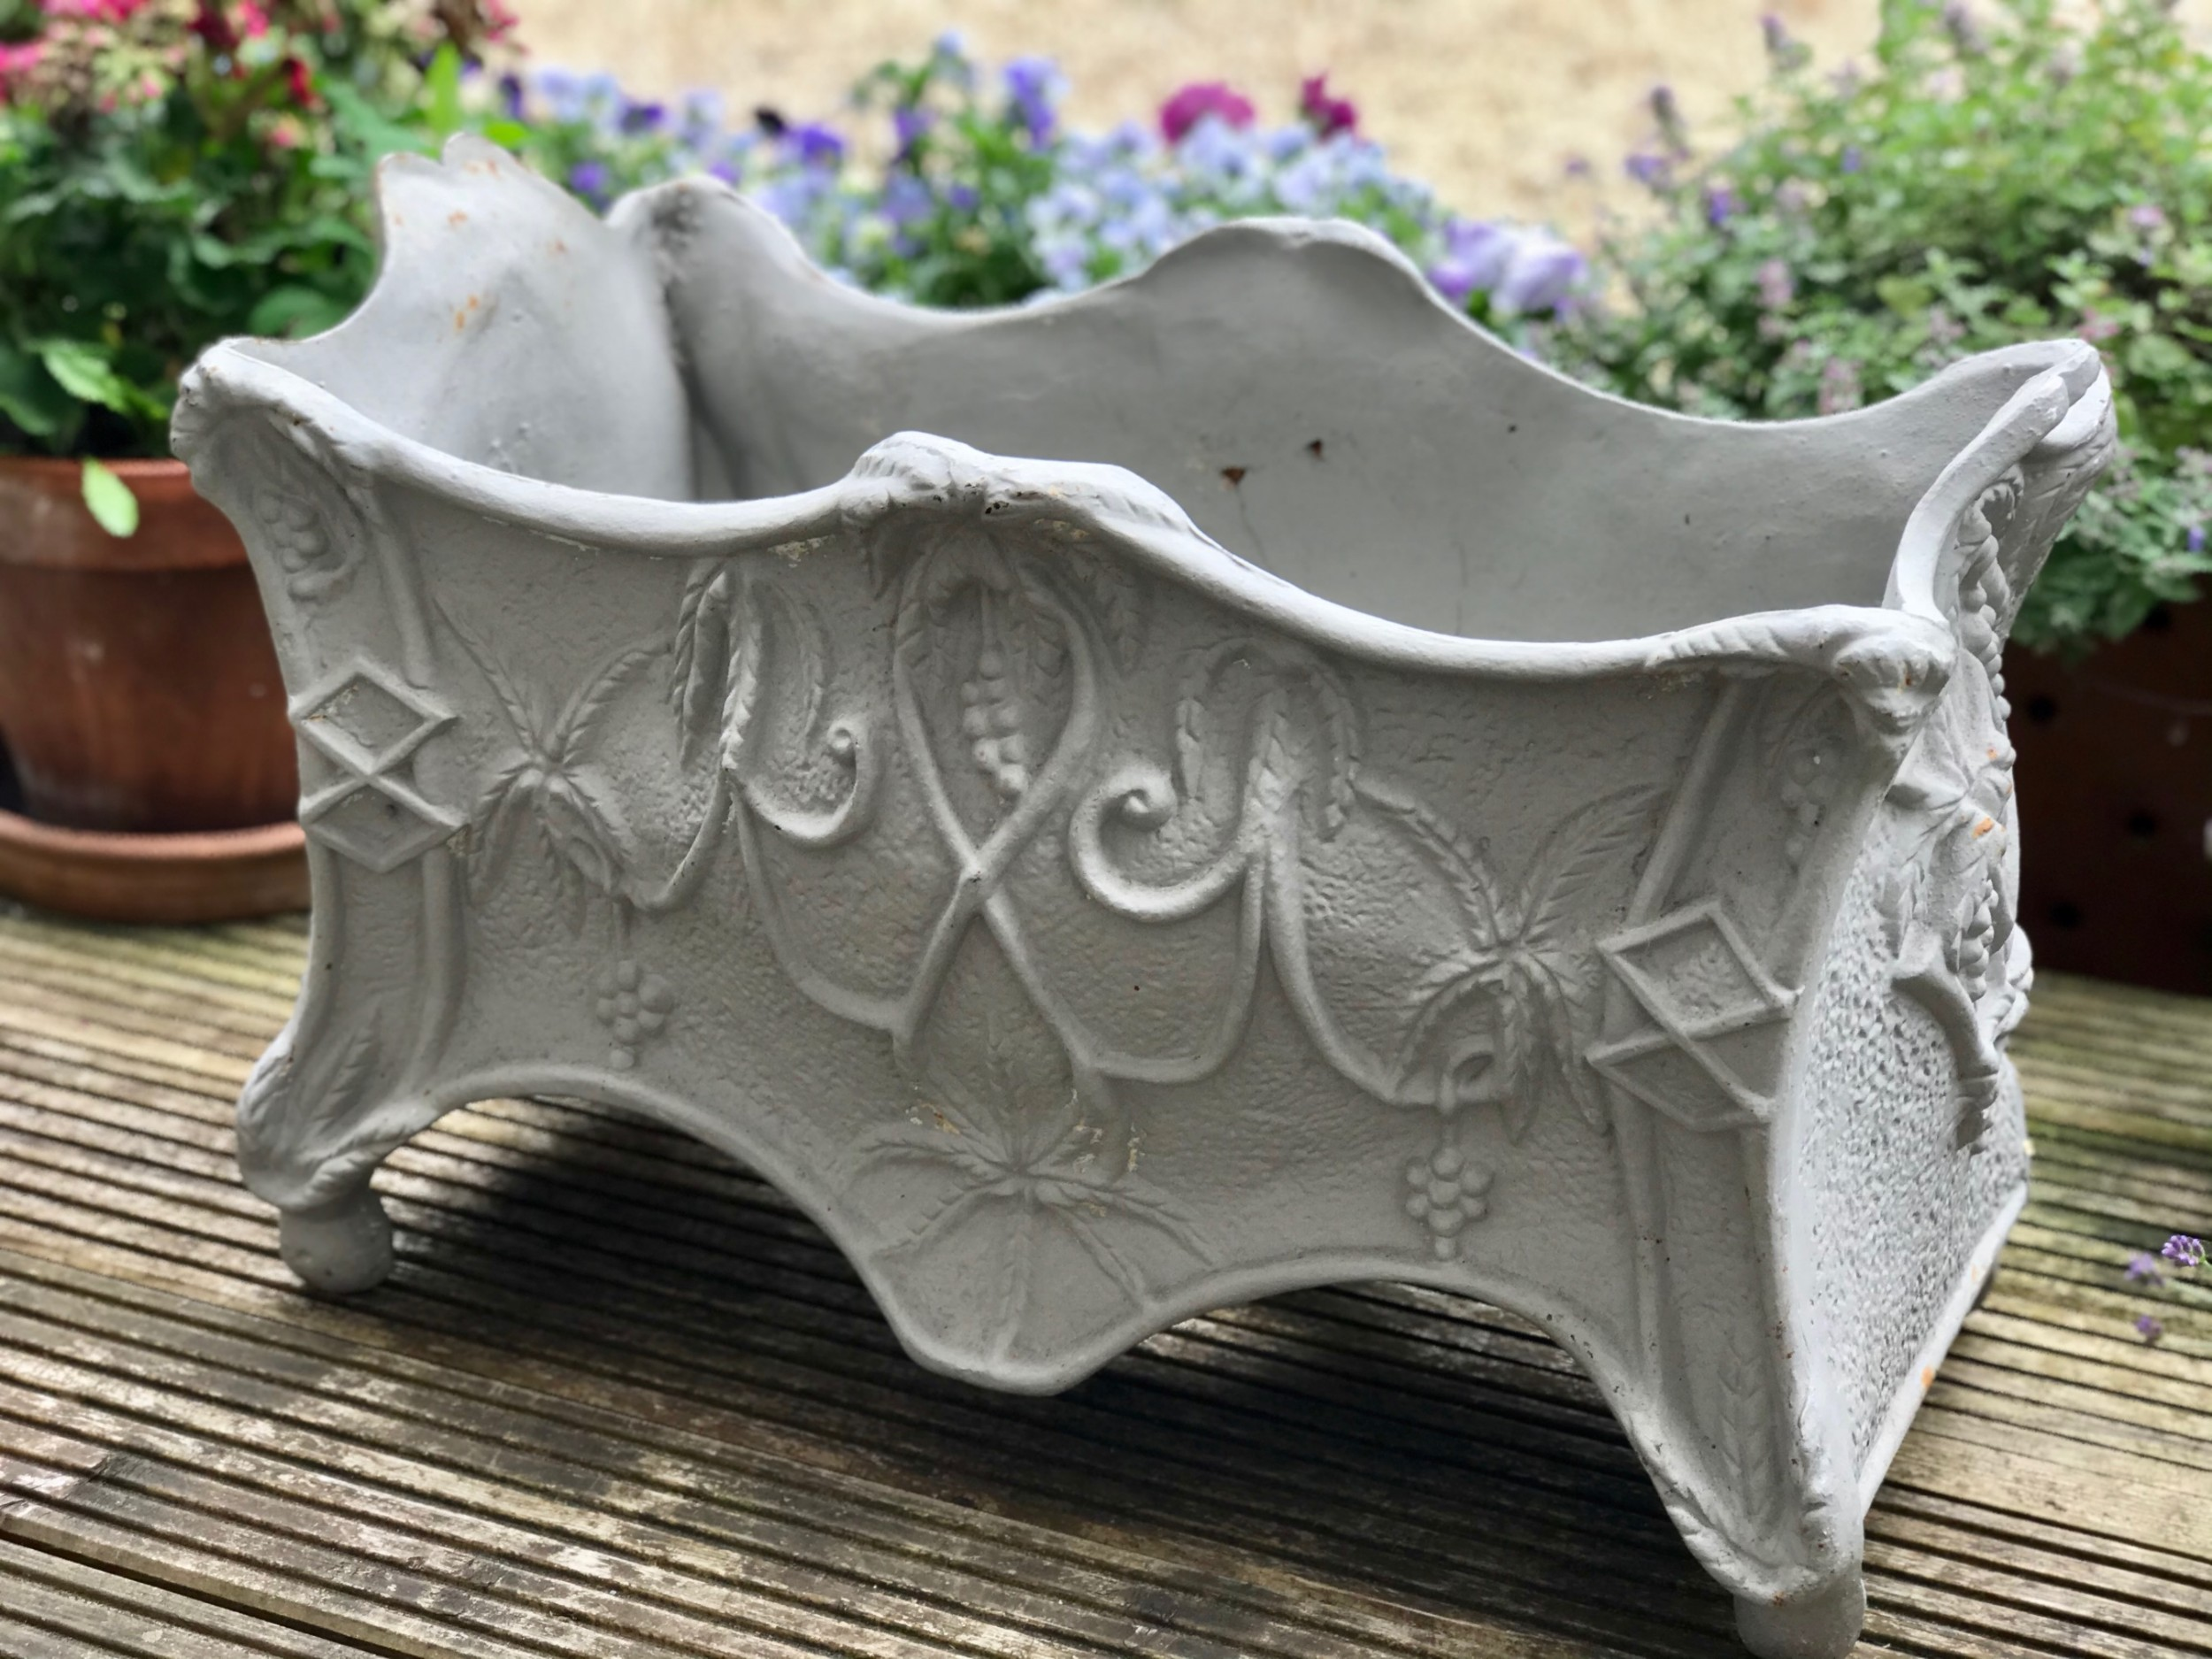 a large ornate painted castiron planterjardiniere early 19th century possibly french architectural garden ornament